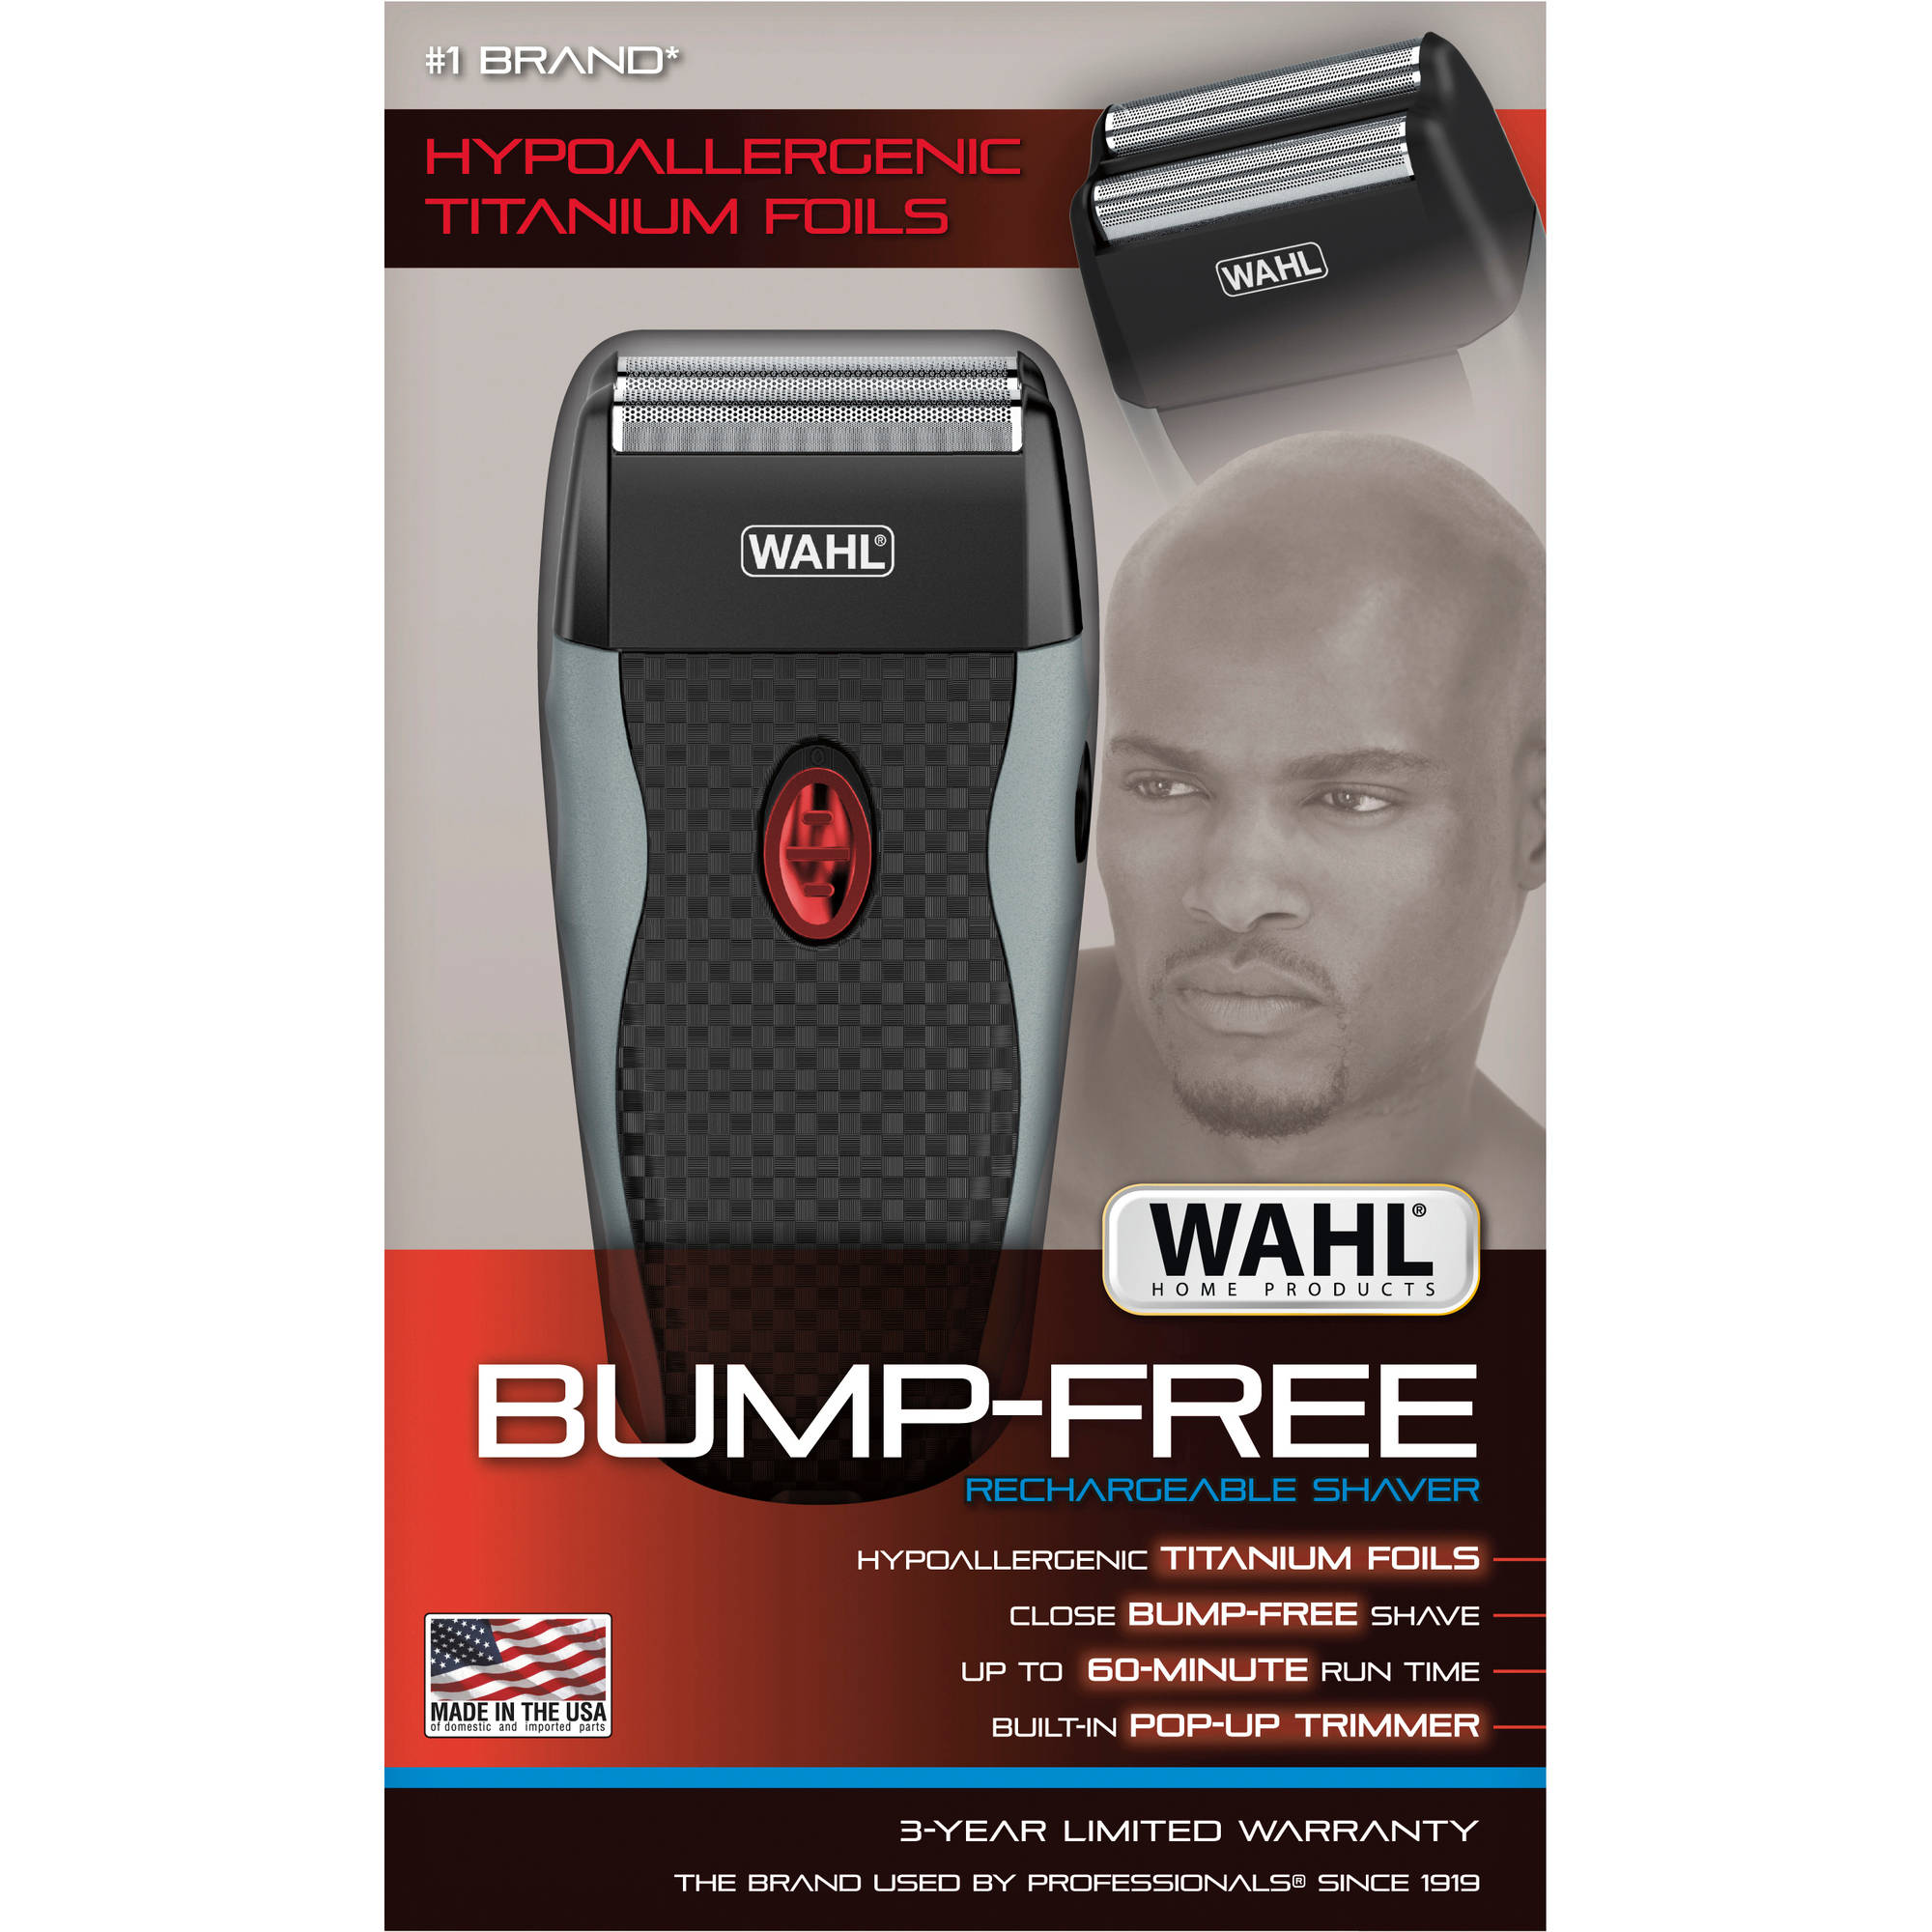 Sale Wahl Home Products Bumpfree Rechargeable Shaver F4